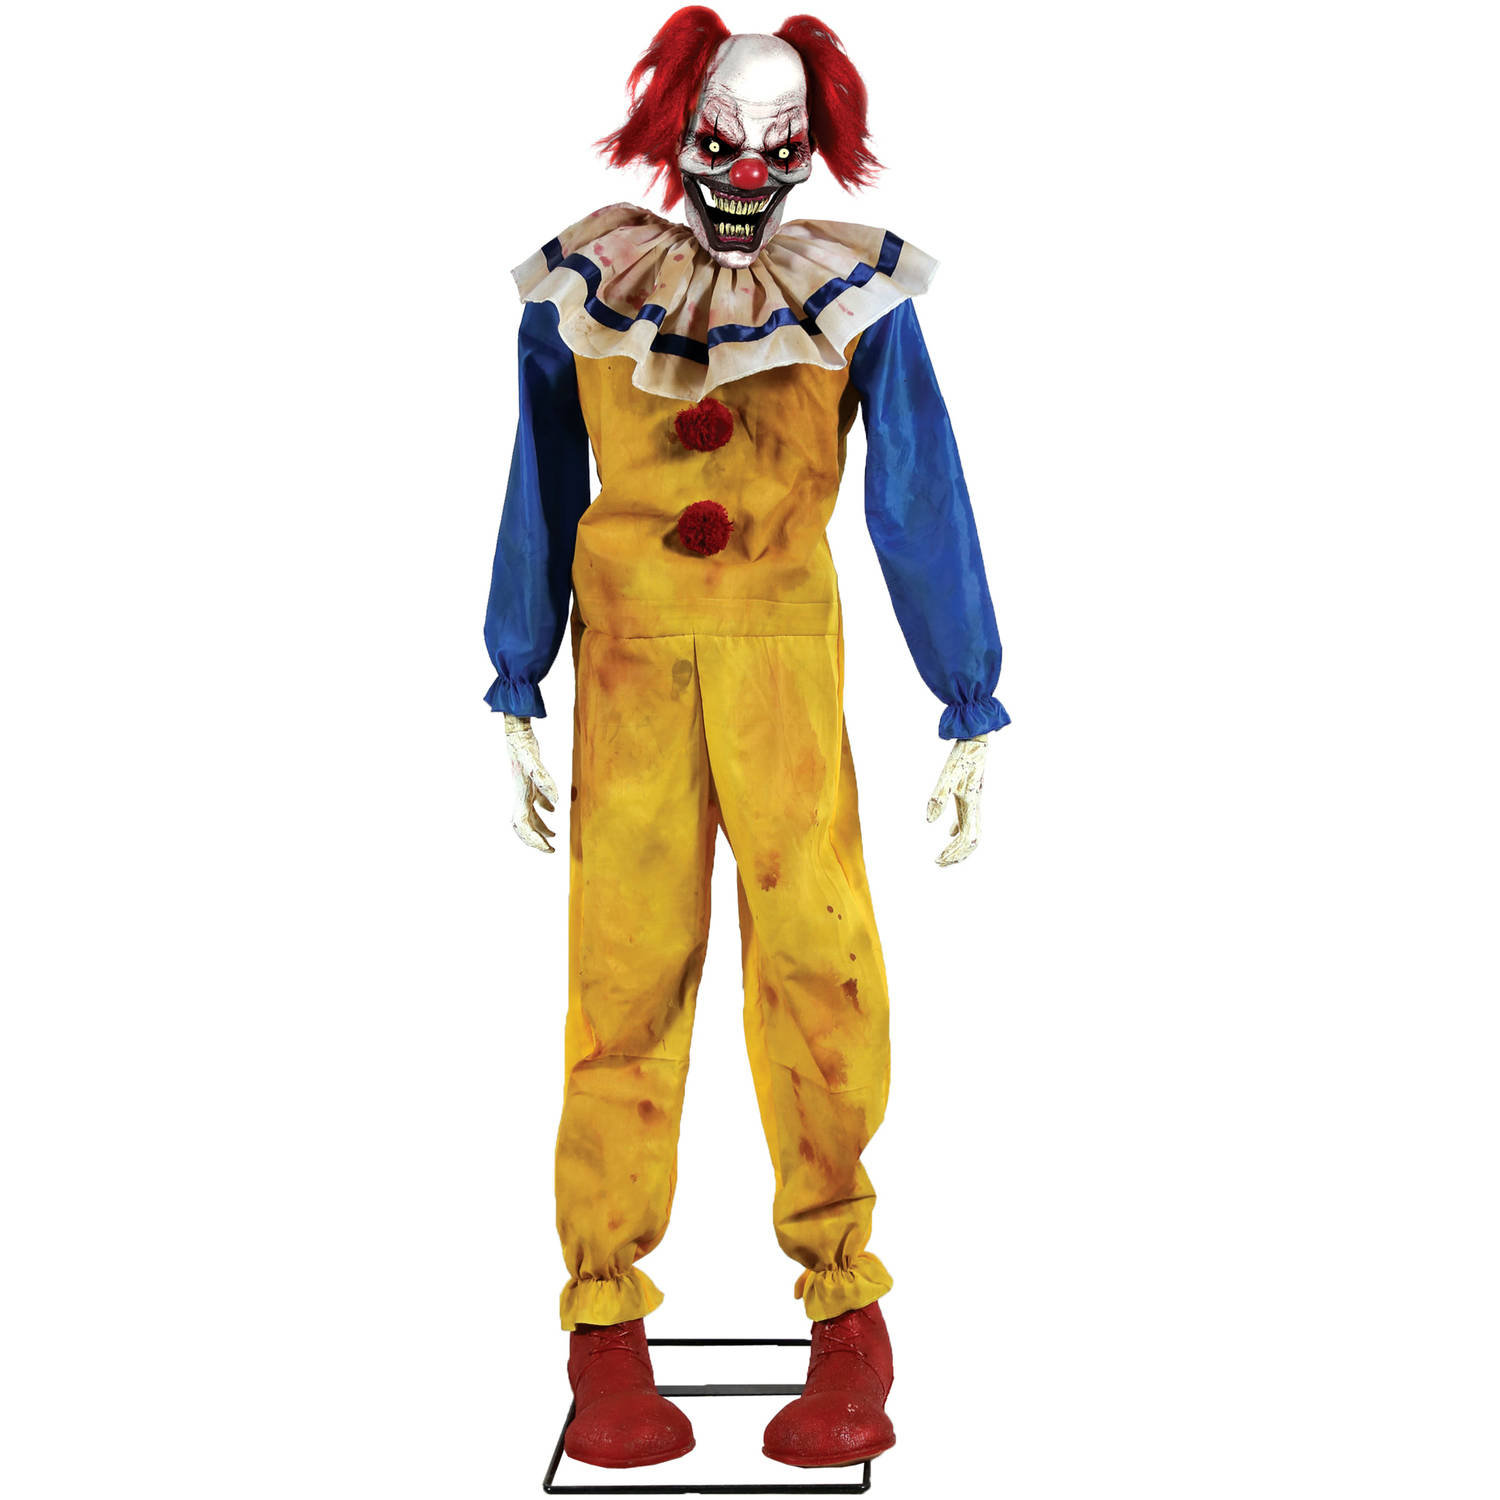 Twitching Clown Animated Prop Halloween Decoration